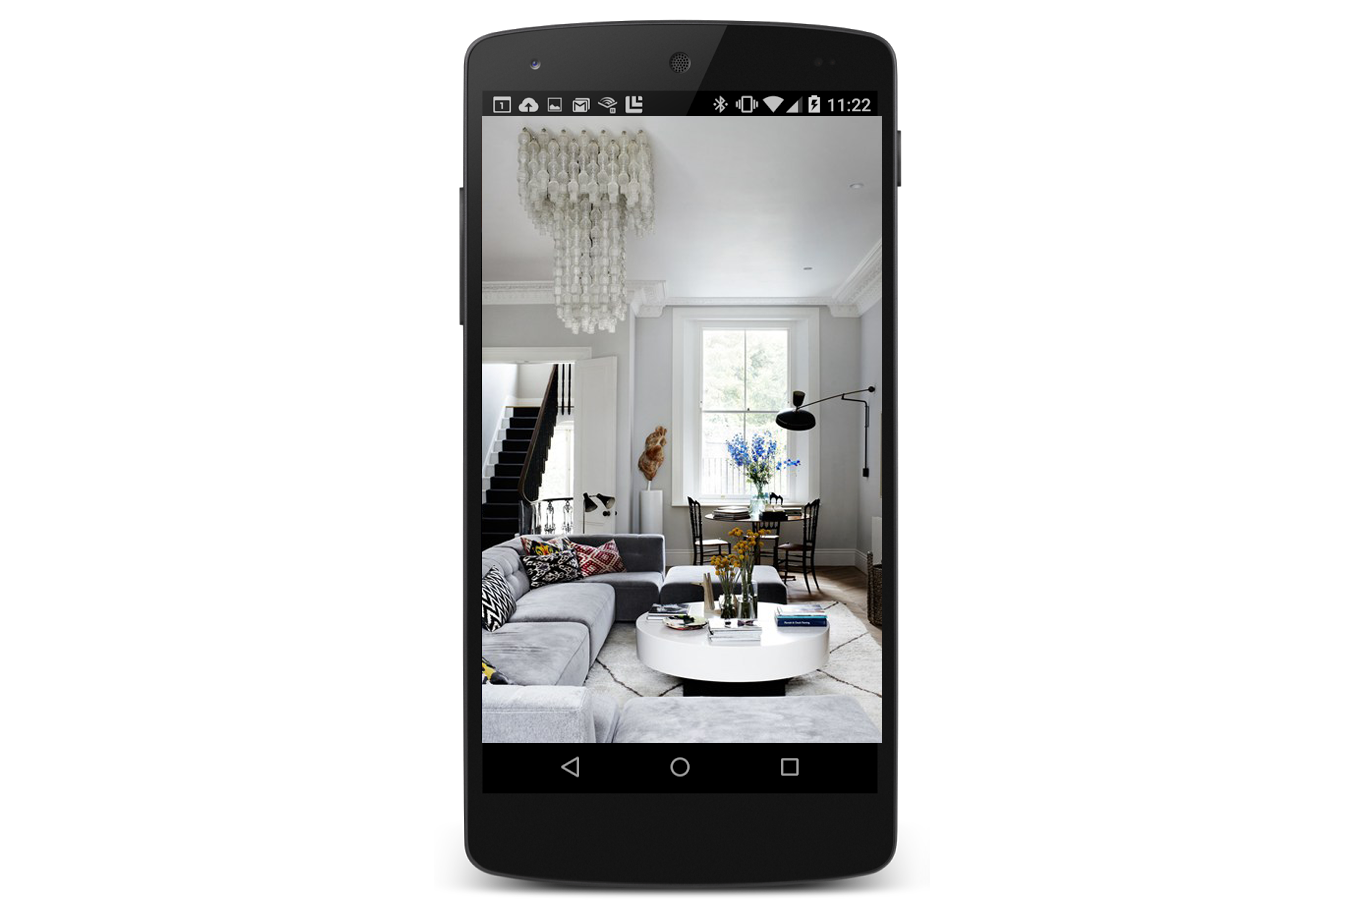 Interior design ideas android apps on google play Interior design app android